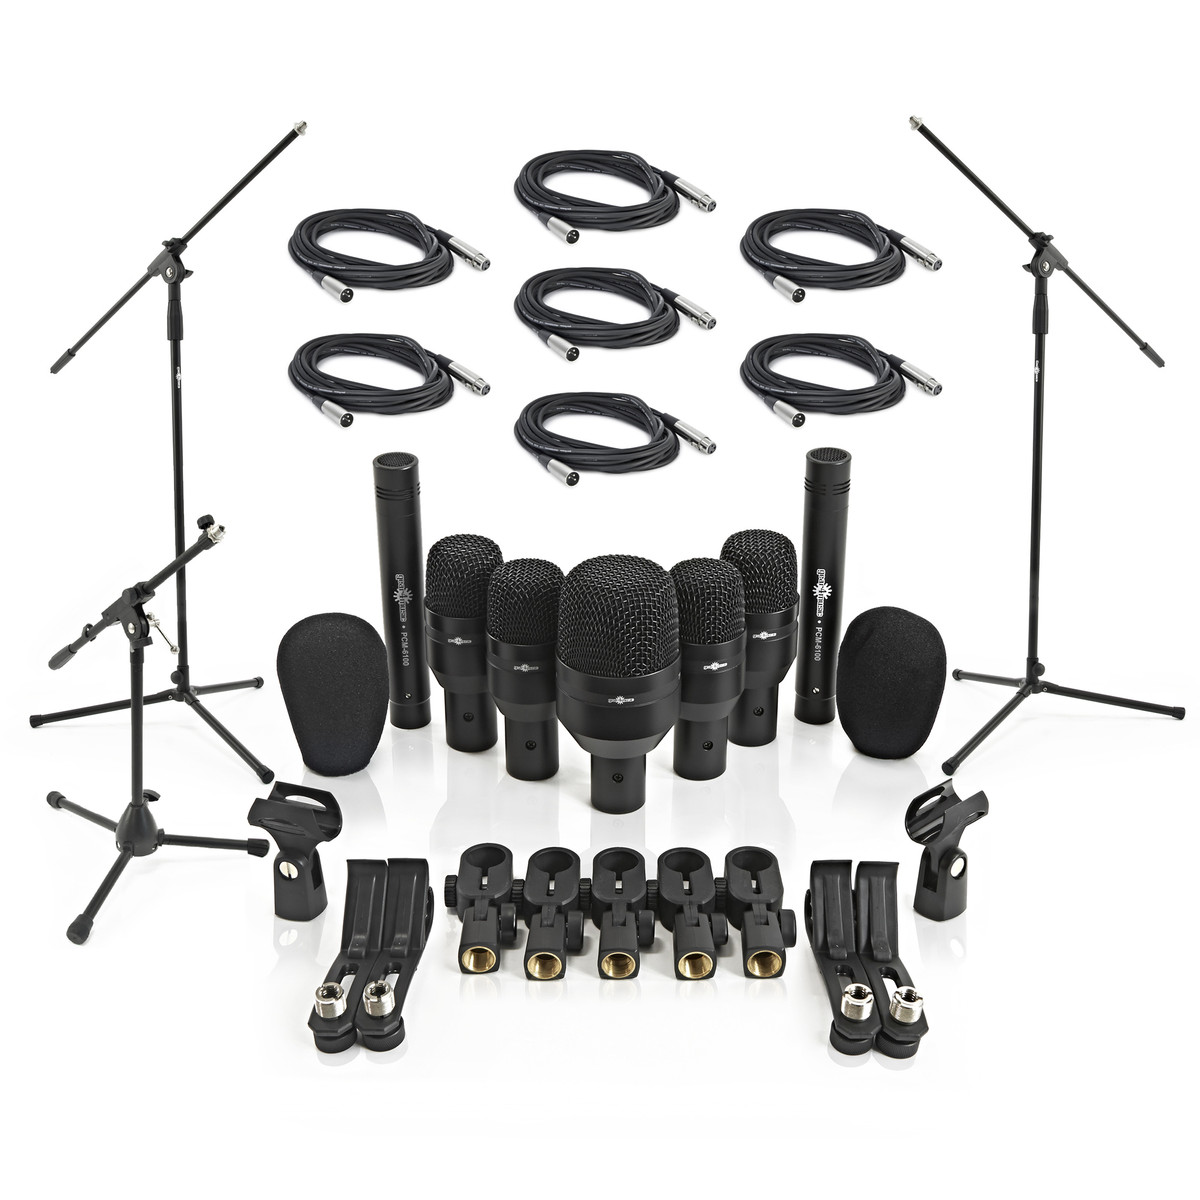 Image of 7 Piece Drum Mic Complete Set Including Stands and Cables